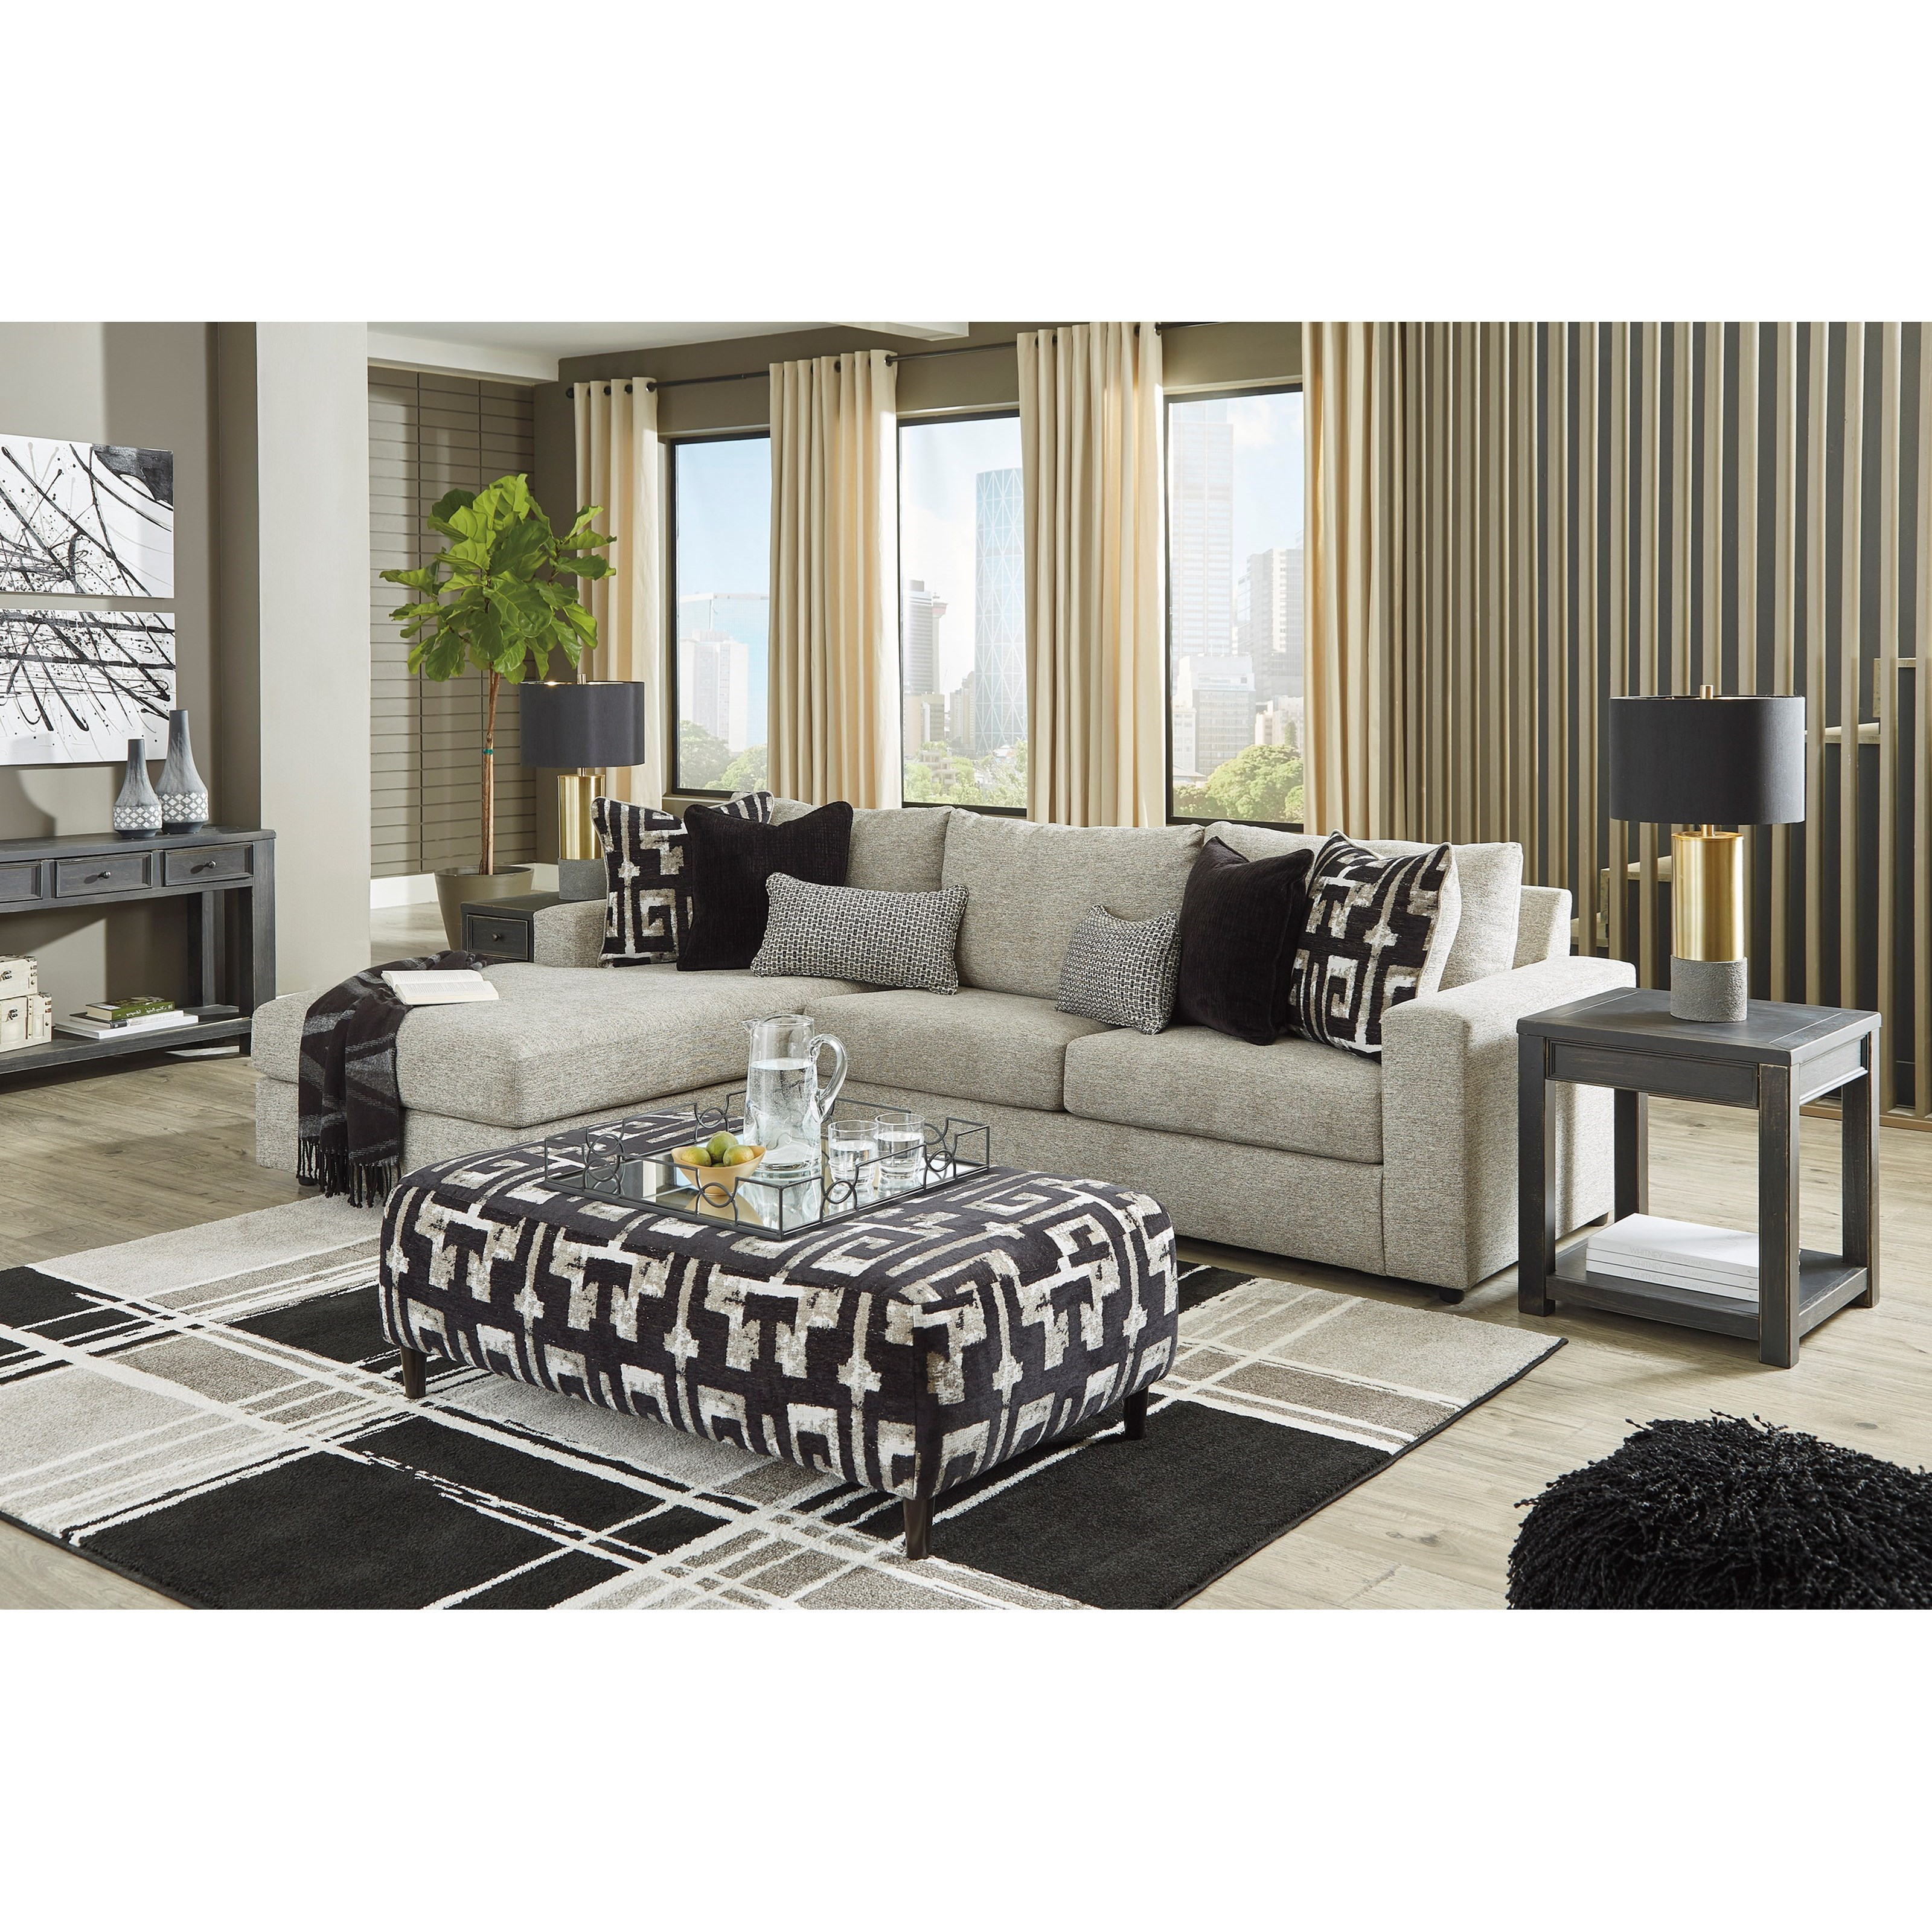 Signature Design By Ashley Ravenstone Living Room Group